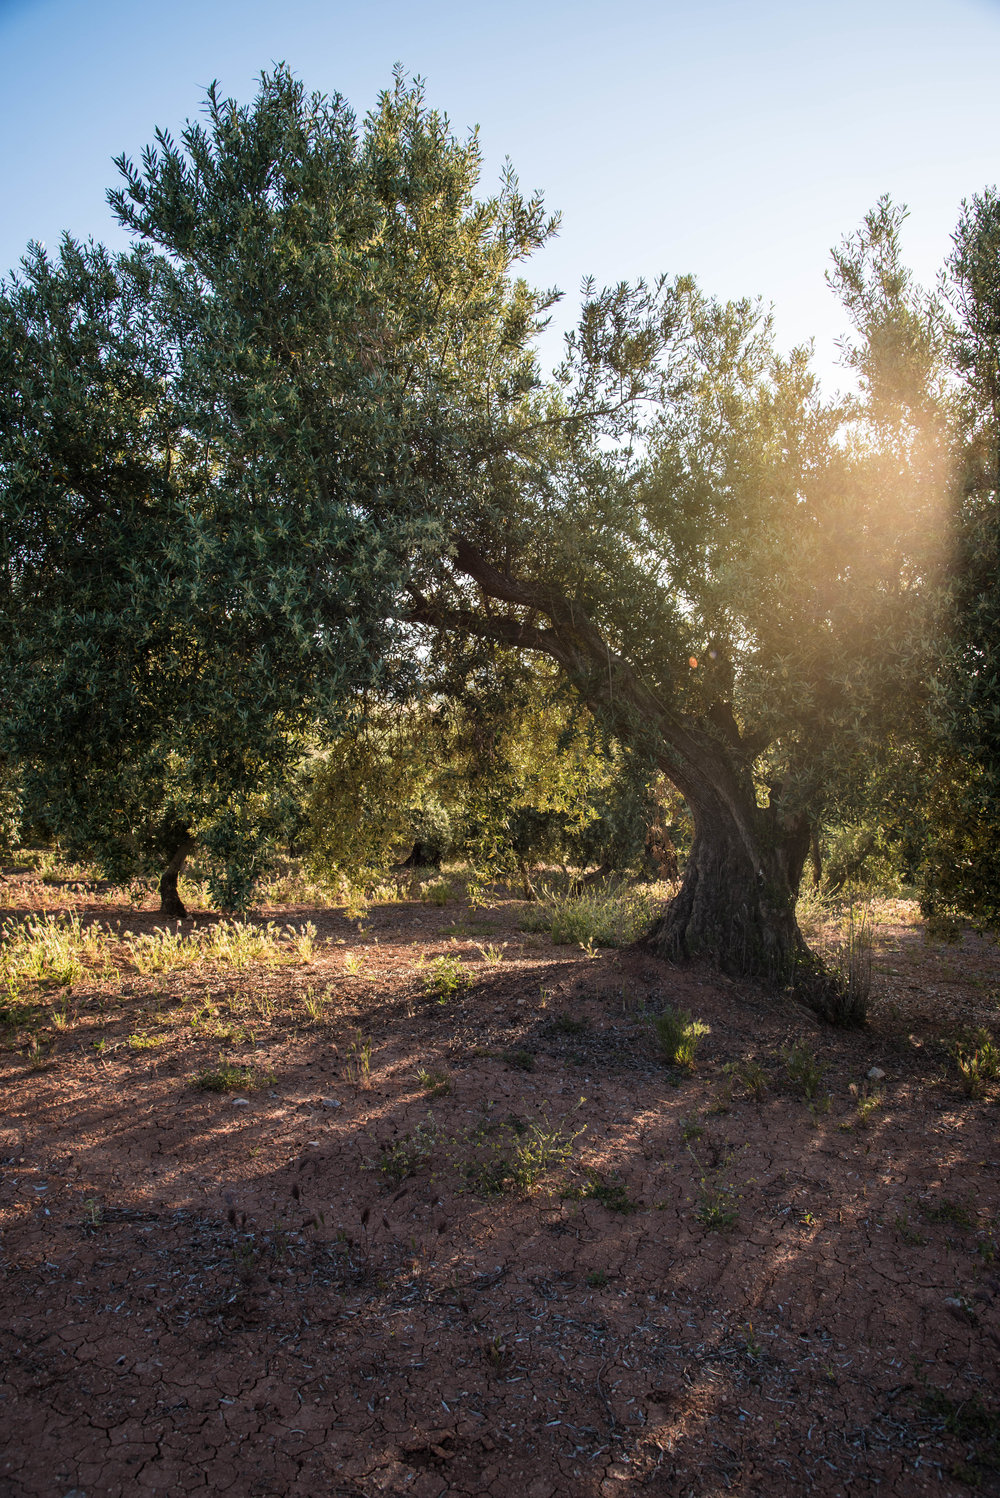 Adopt An Olive Tree in Their Name - Courtesy of Especially Puglia